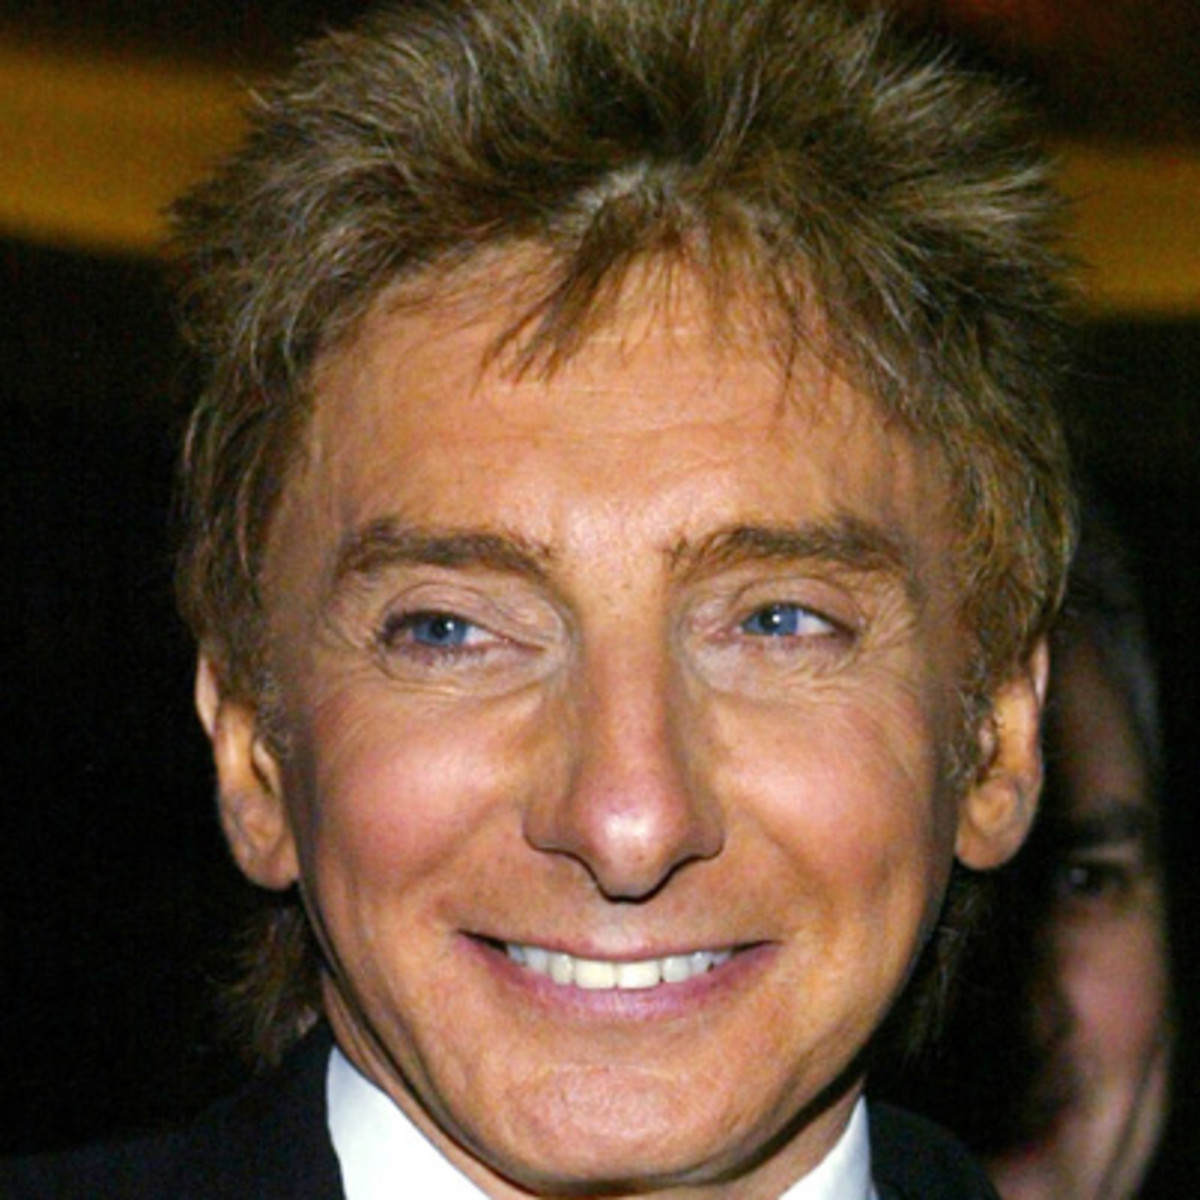 Barry Manilow - Songwriter, Singer - Biography